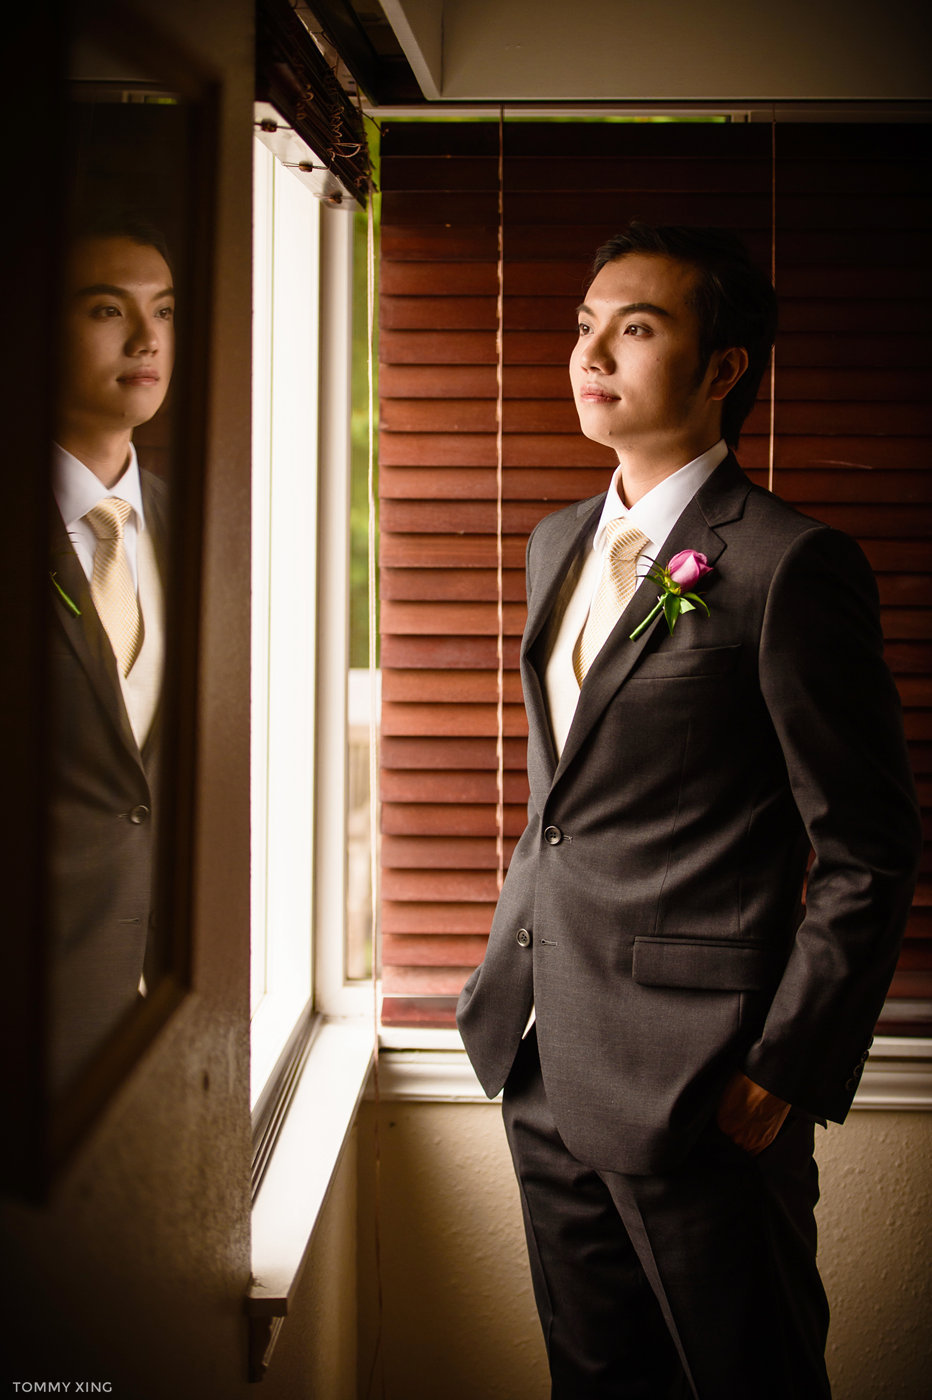 Seattle Wedding and pre wedding Los Angeles Tommy Xing Photography 西雅图洛杉矶旧金山婚礼婚纱照摄影师 006.jpg